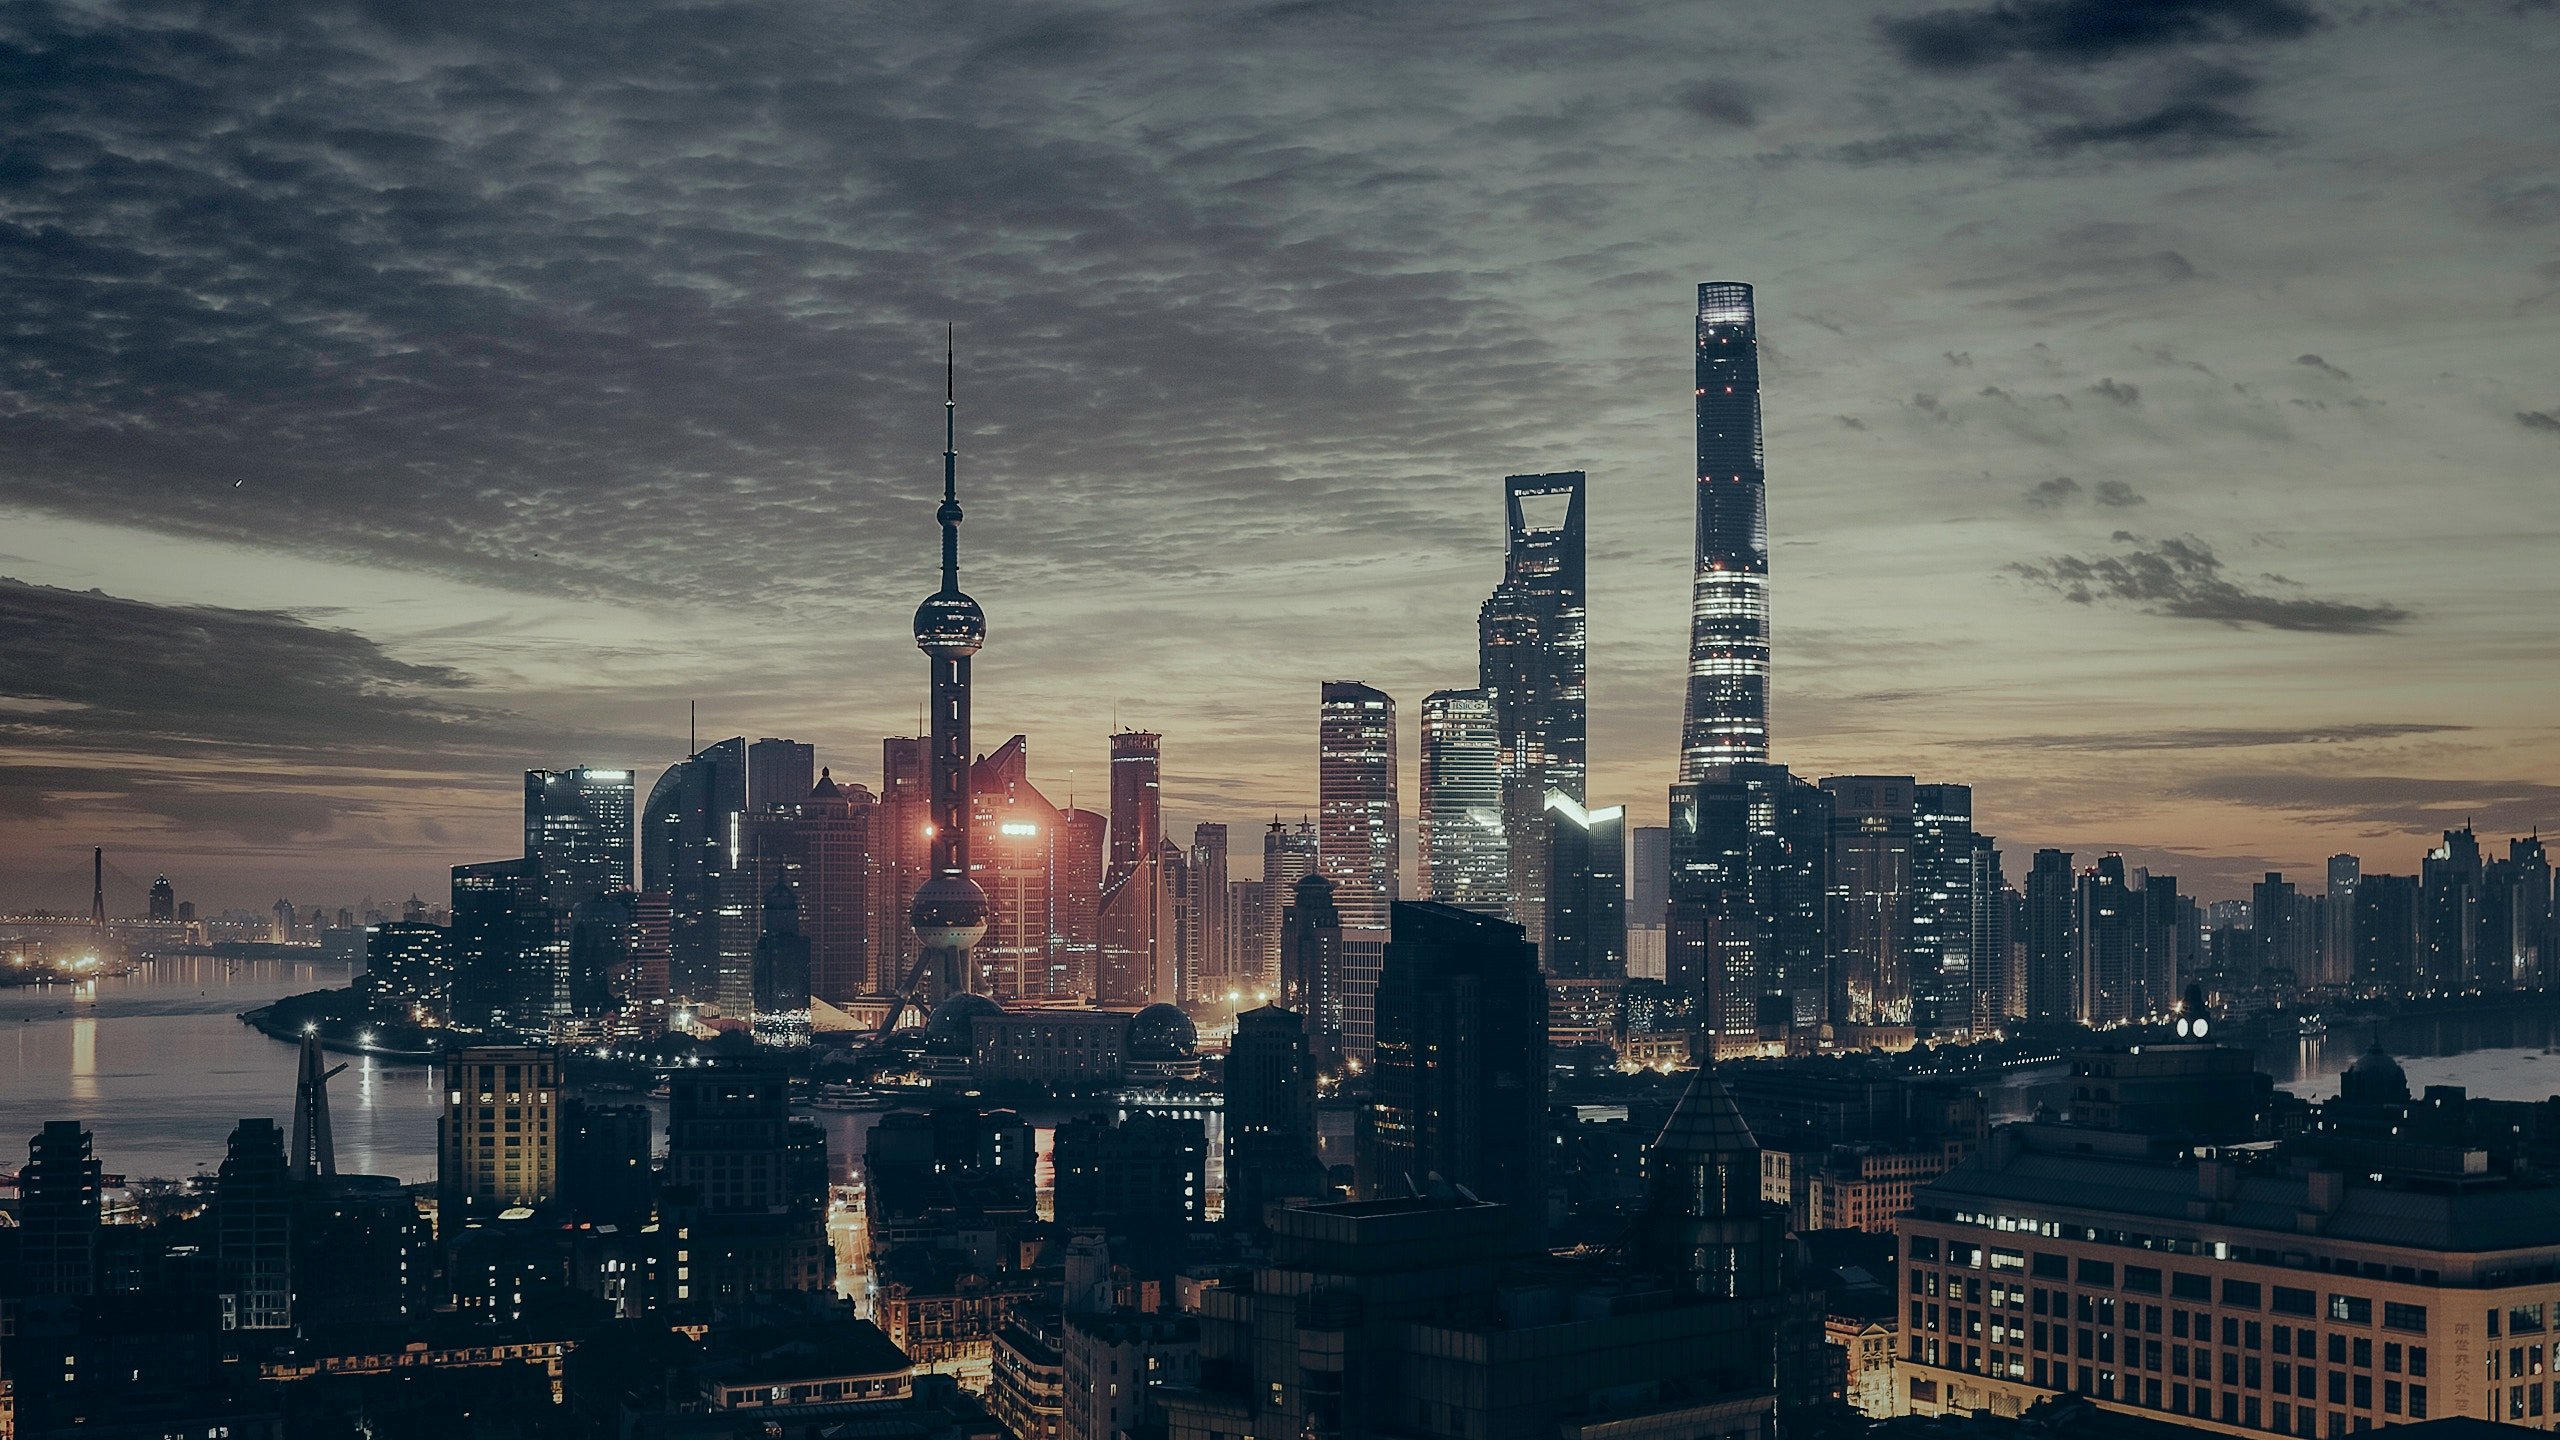 Shanghai skyline and tower at night